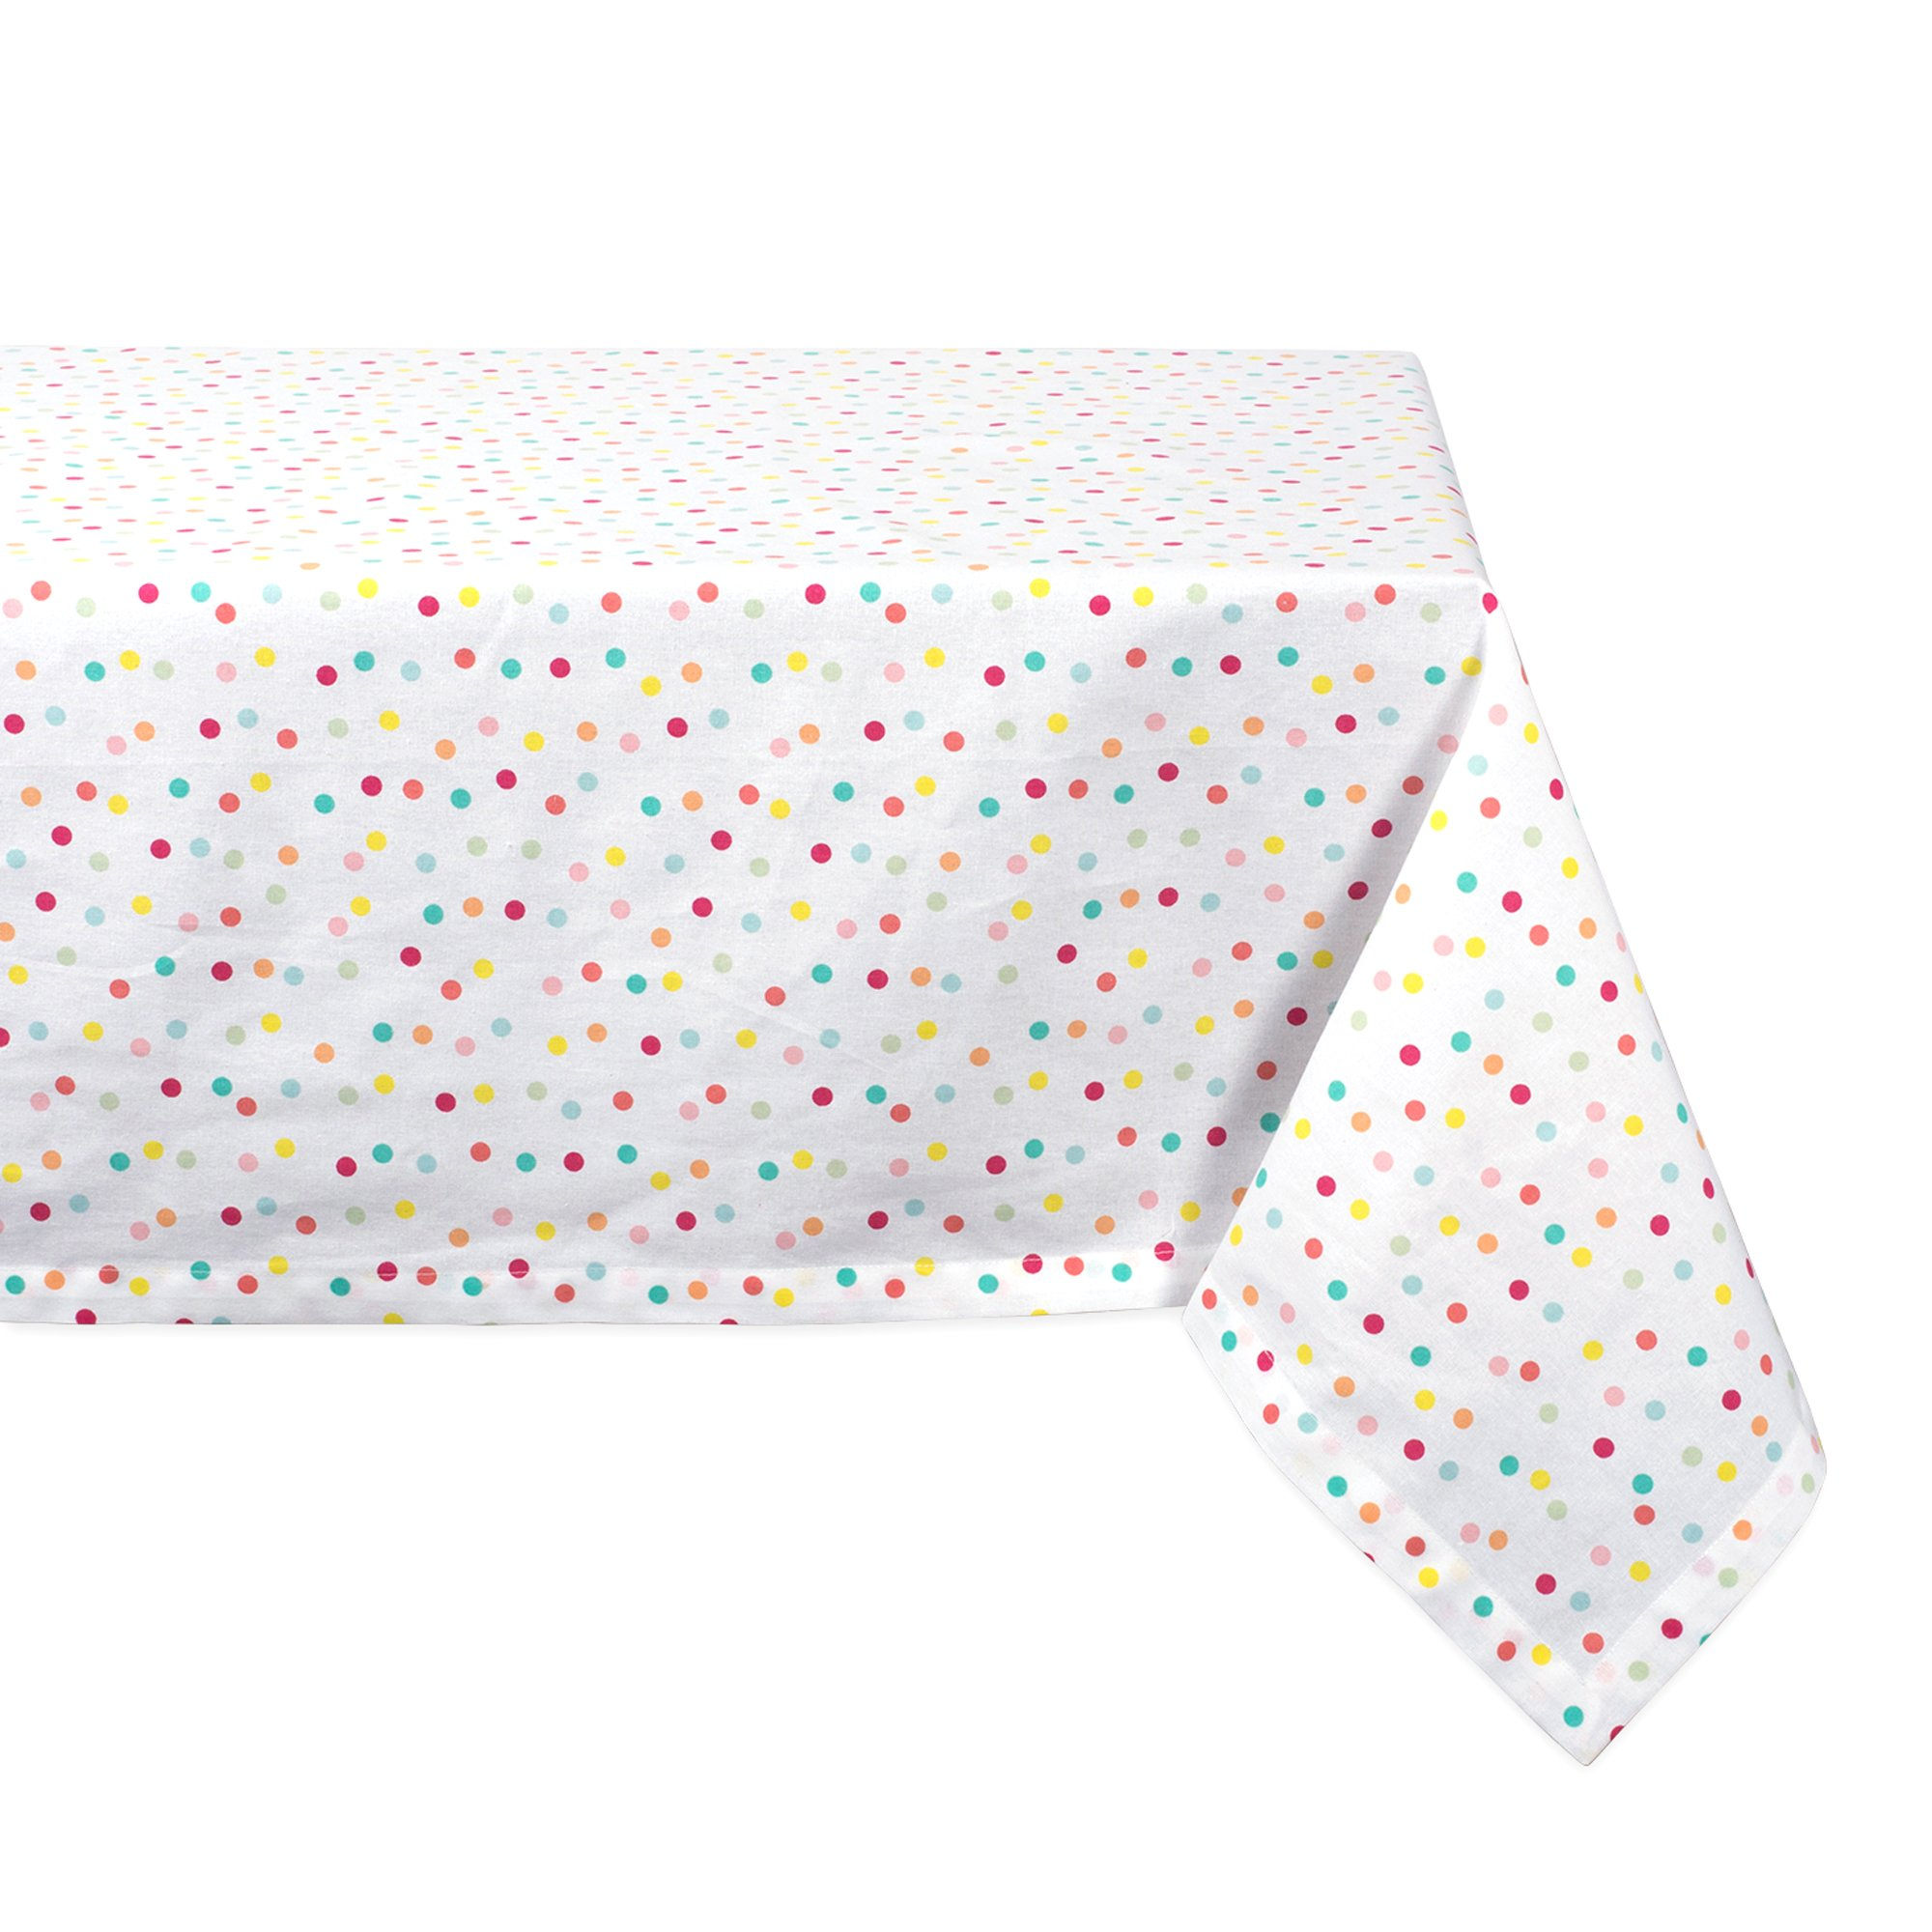 DII Rectangular Cotton Tablecloth for Spring Wedding, Dinner Parties, Kid's Party and Everyday Use - 60x120'', Multi Polka Dots